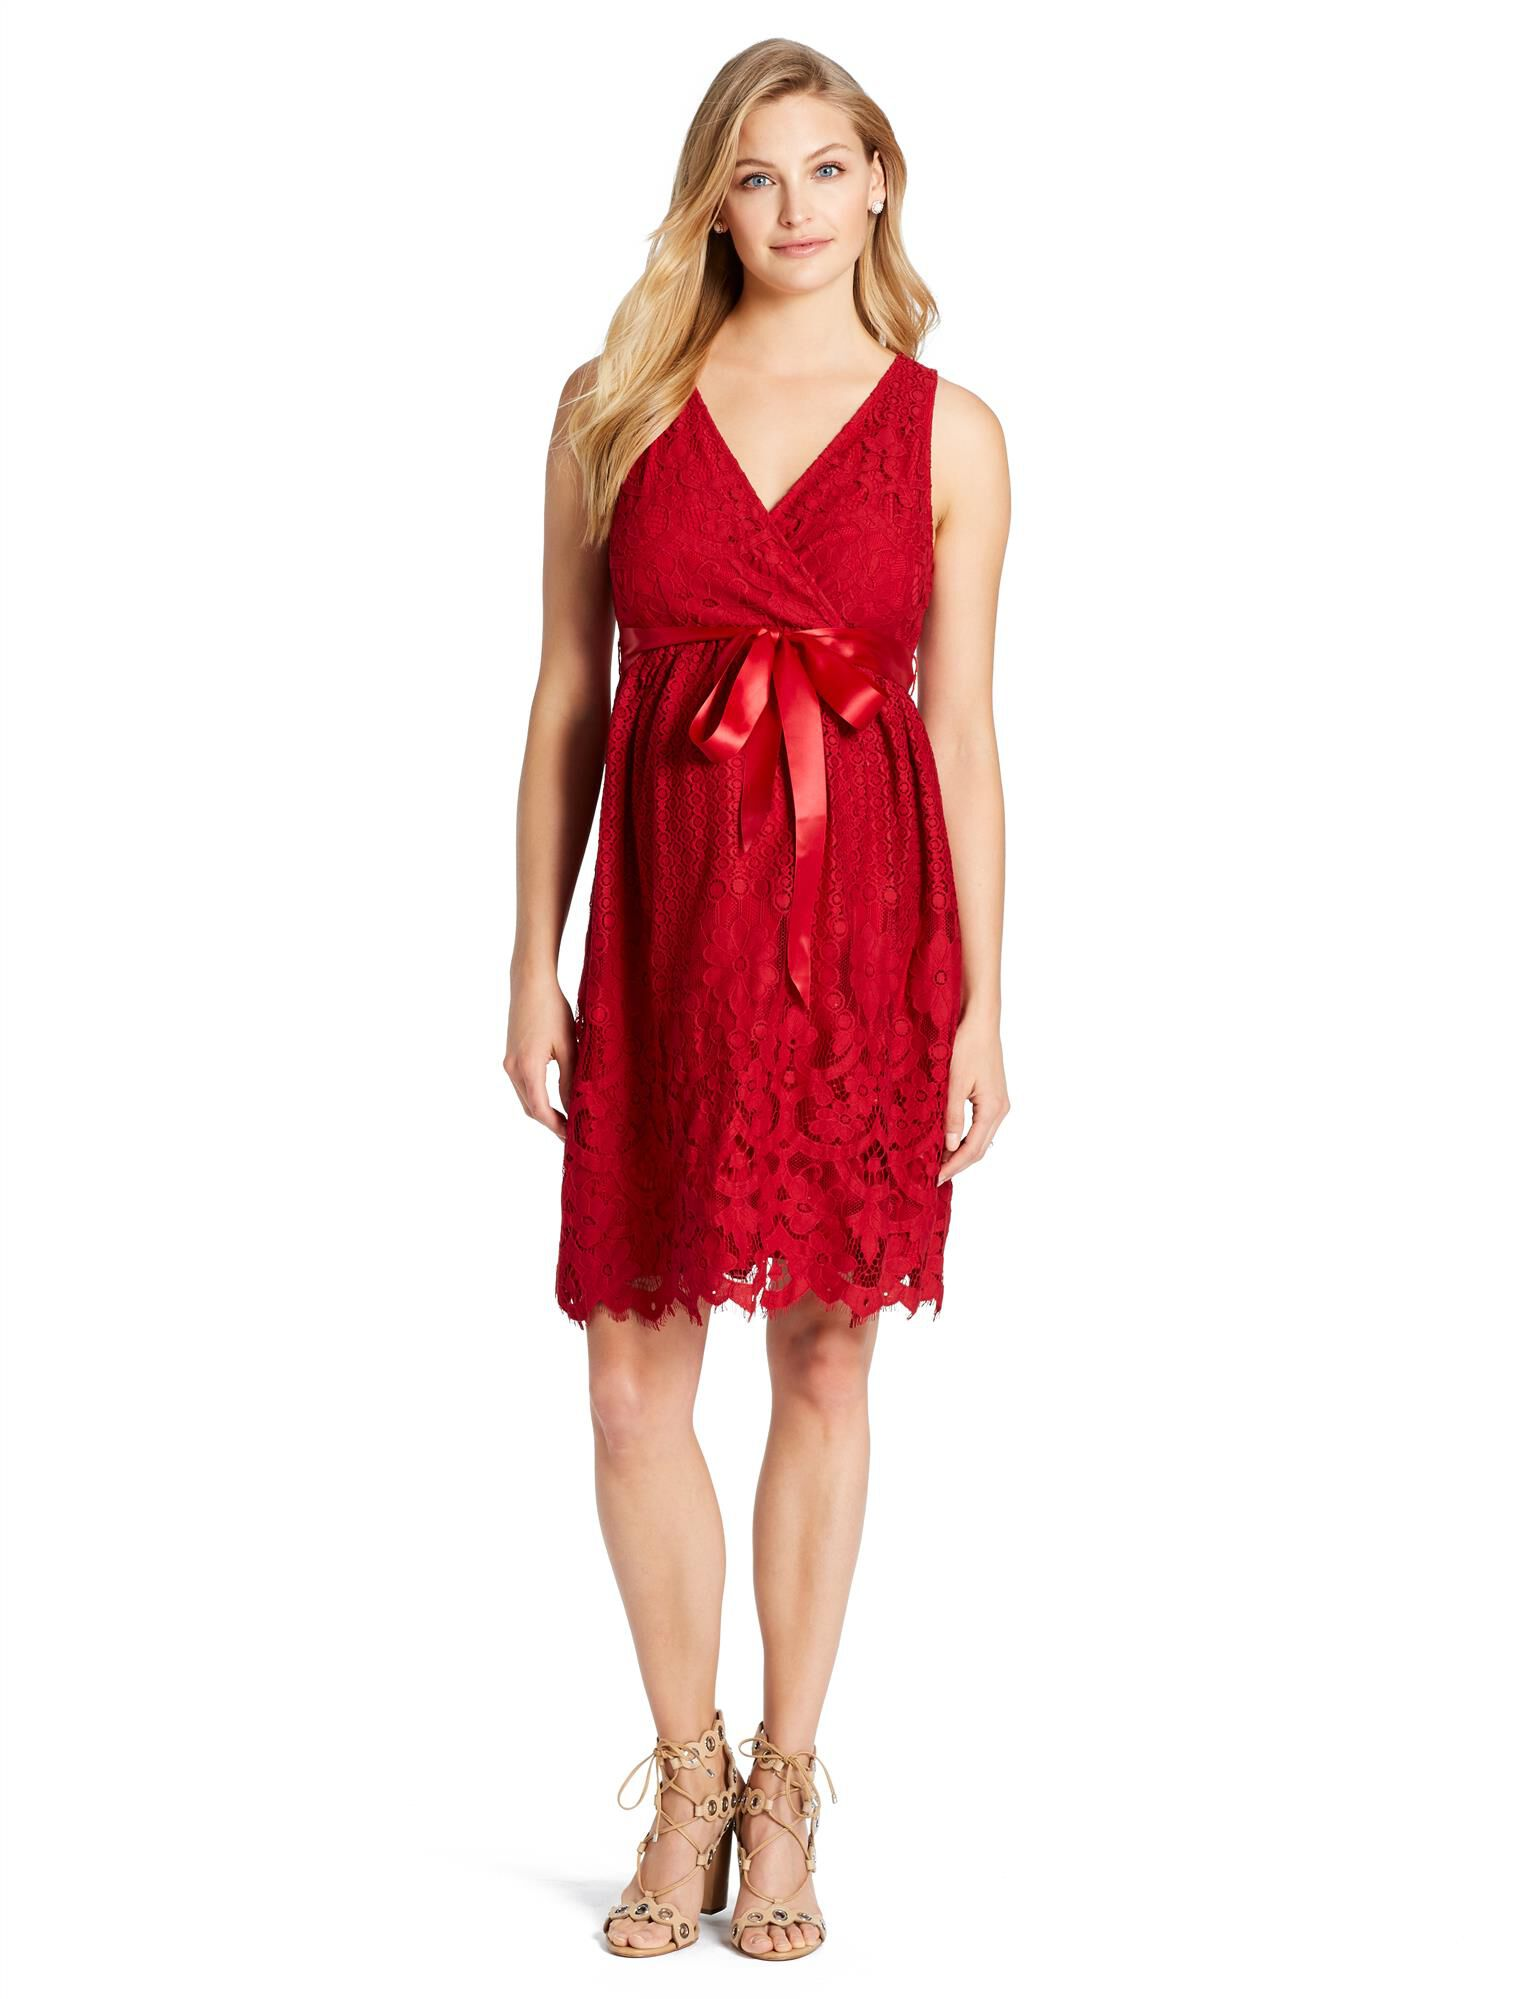 Jessica Simpson Lace Maternity Dress